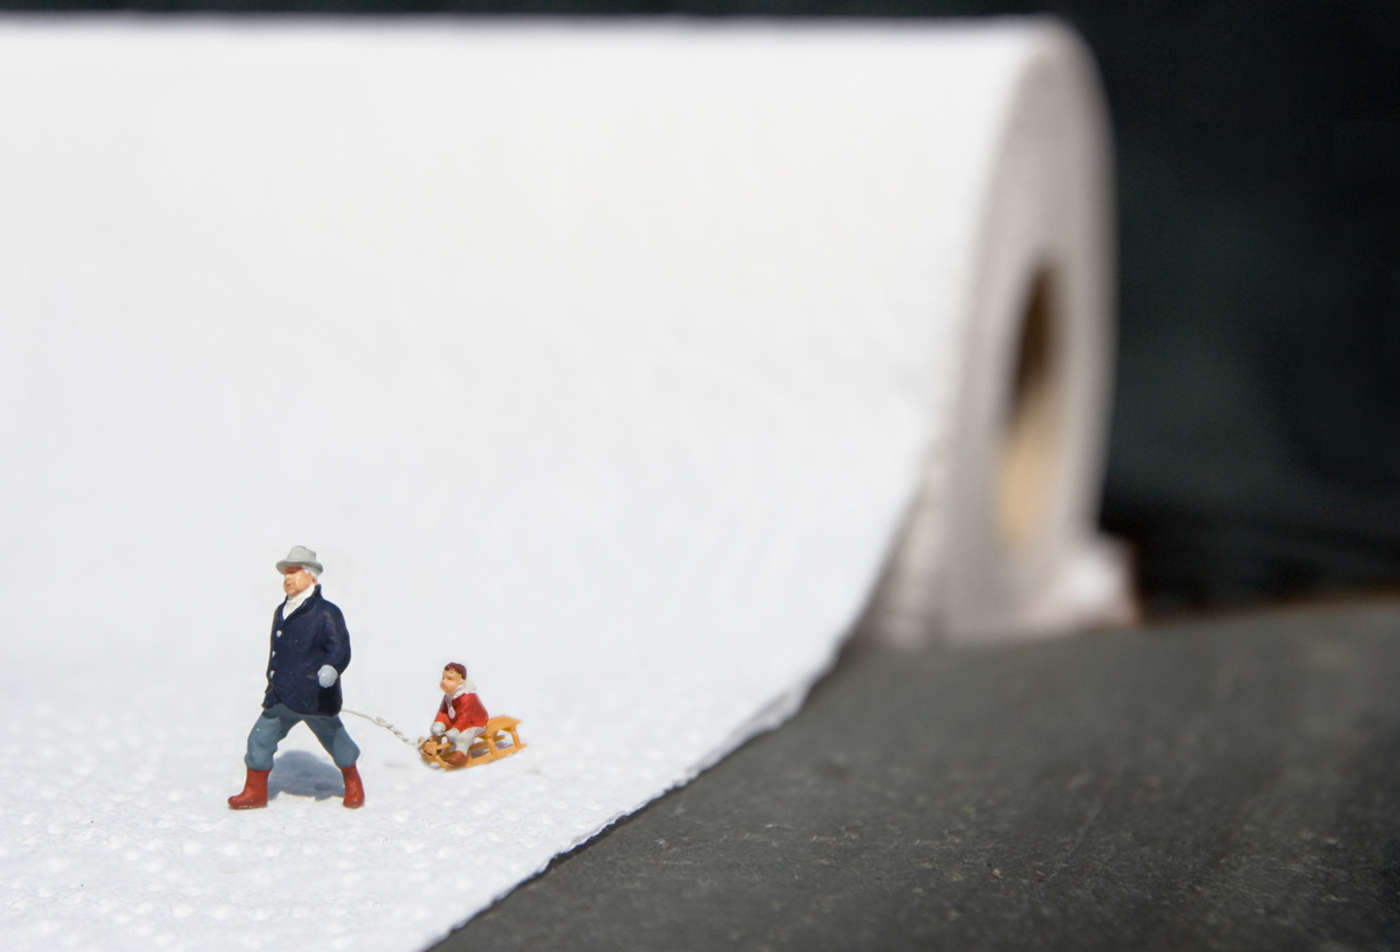 The little people project, la micro street art di Slinkachu | Collater.al 13